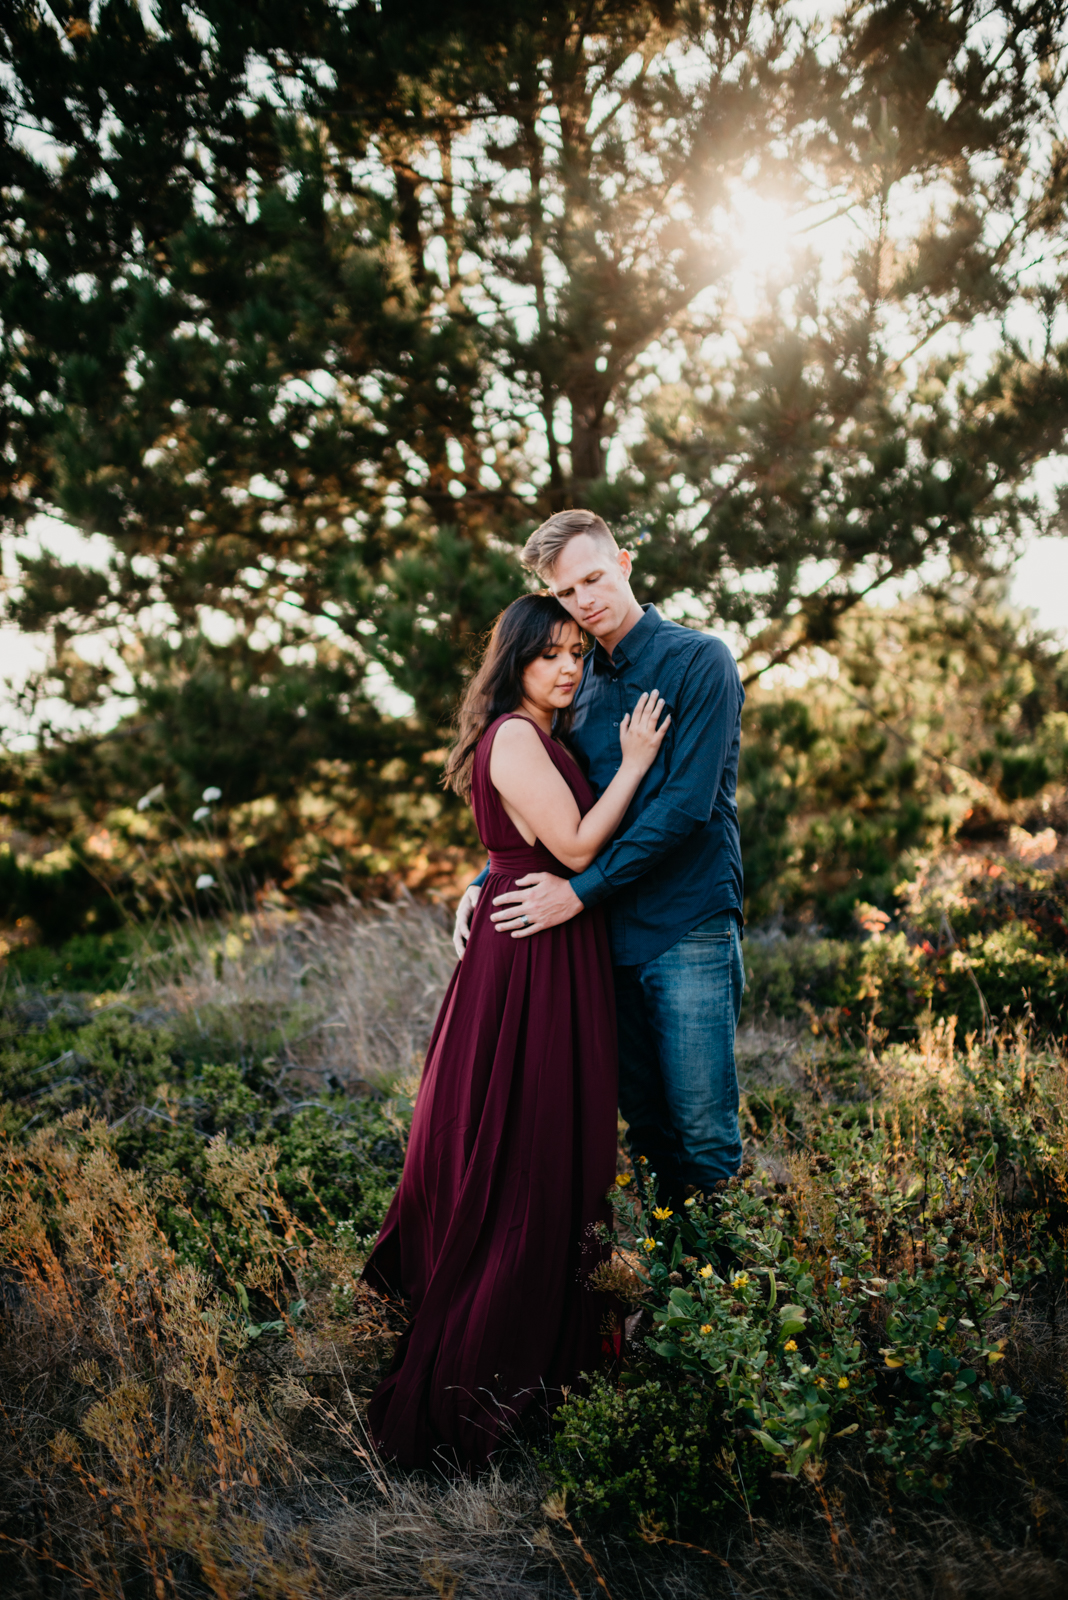 Matt & Belen Engagement - Website-1